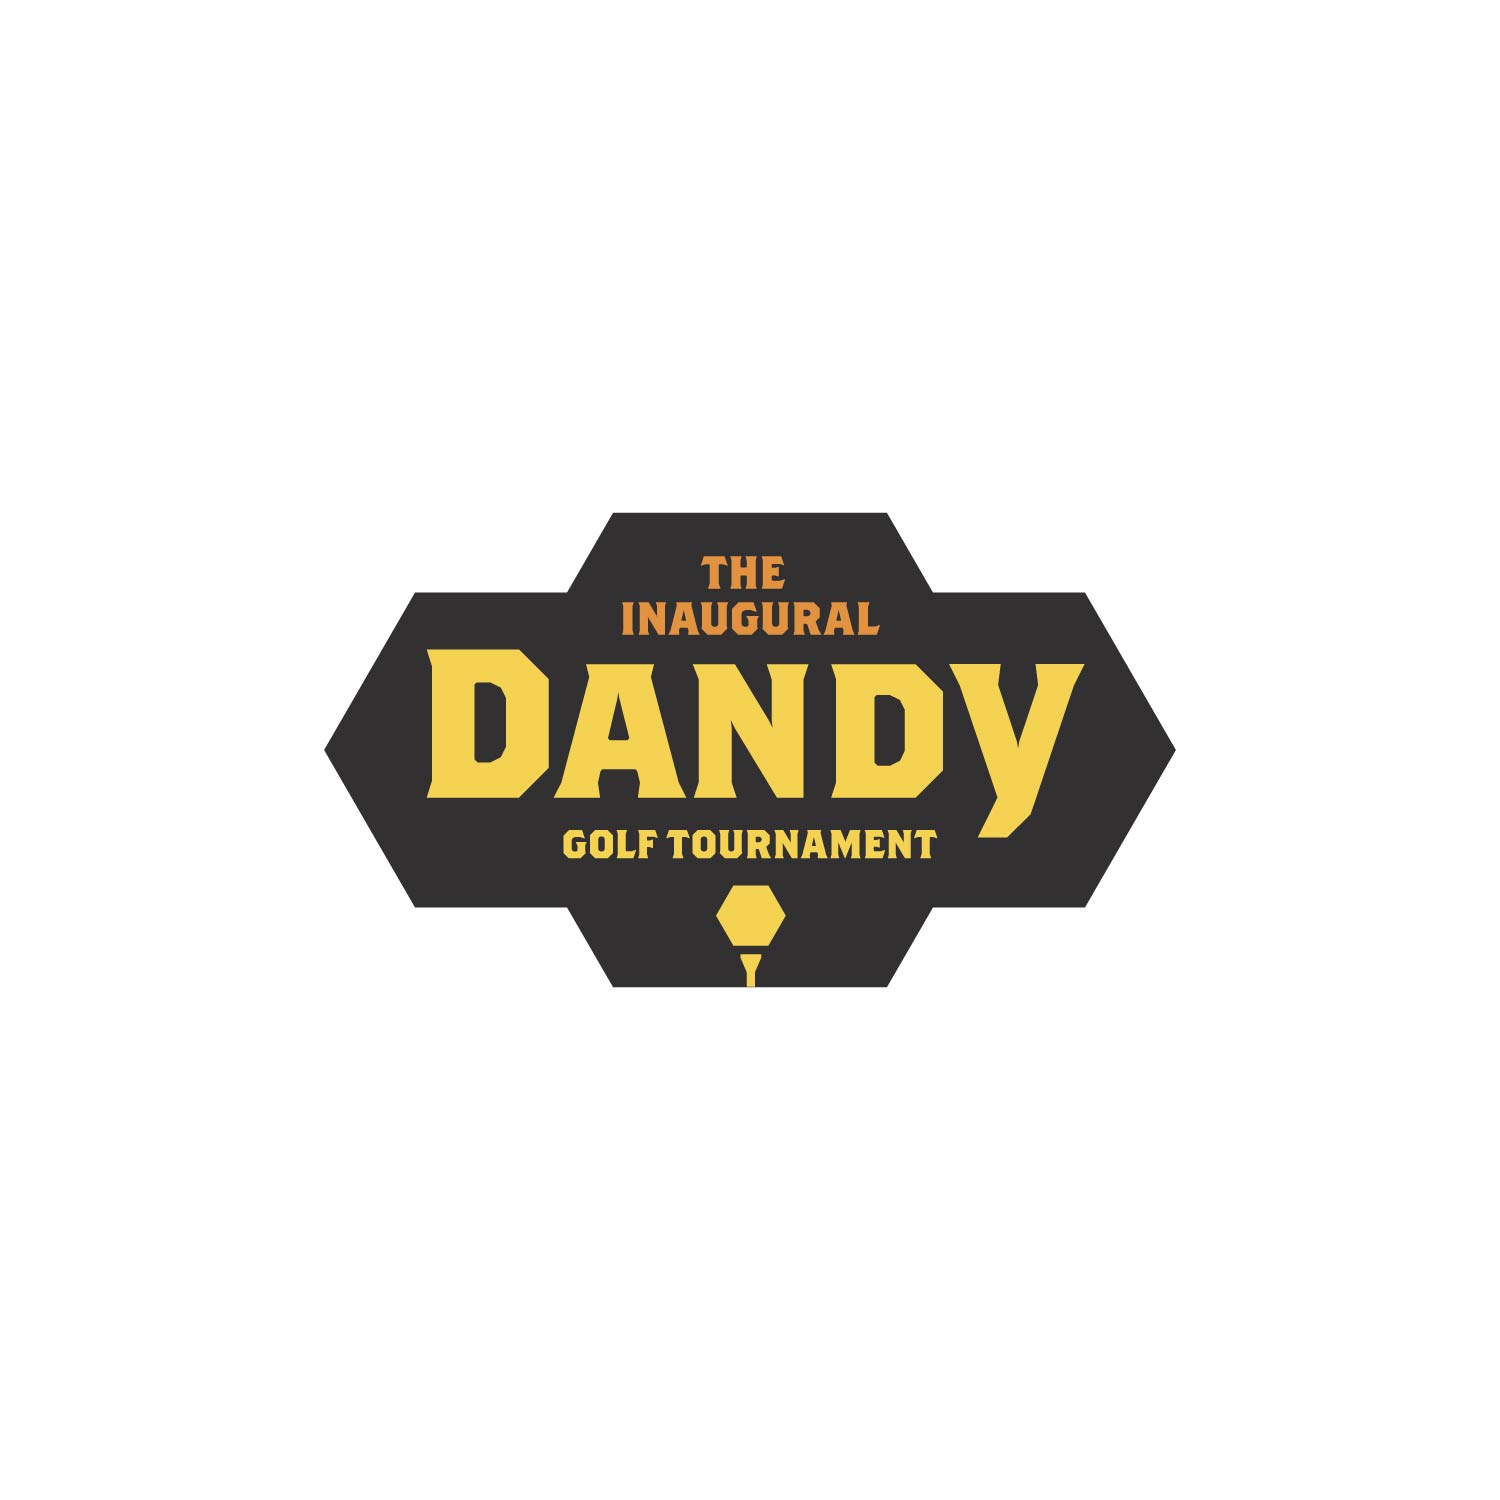 The_Dandy_Inaugural